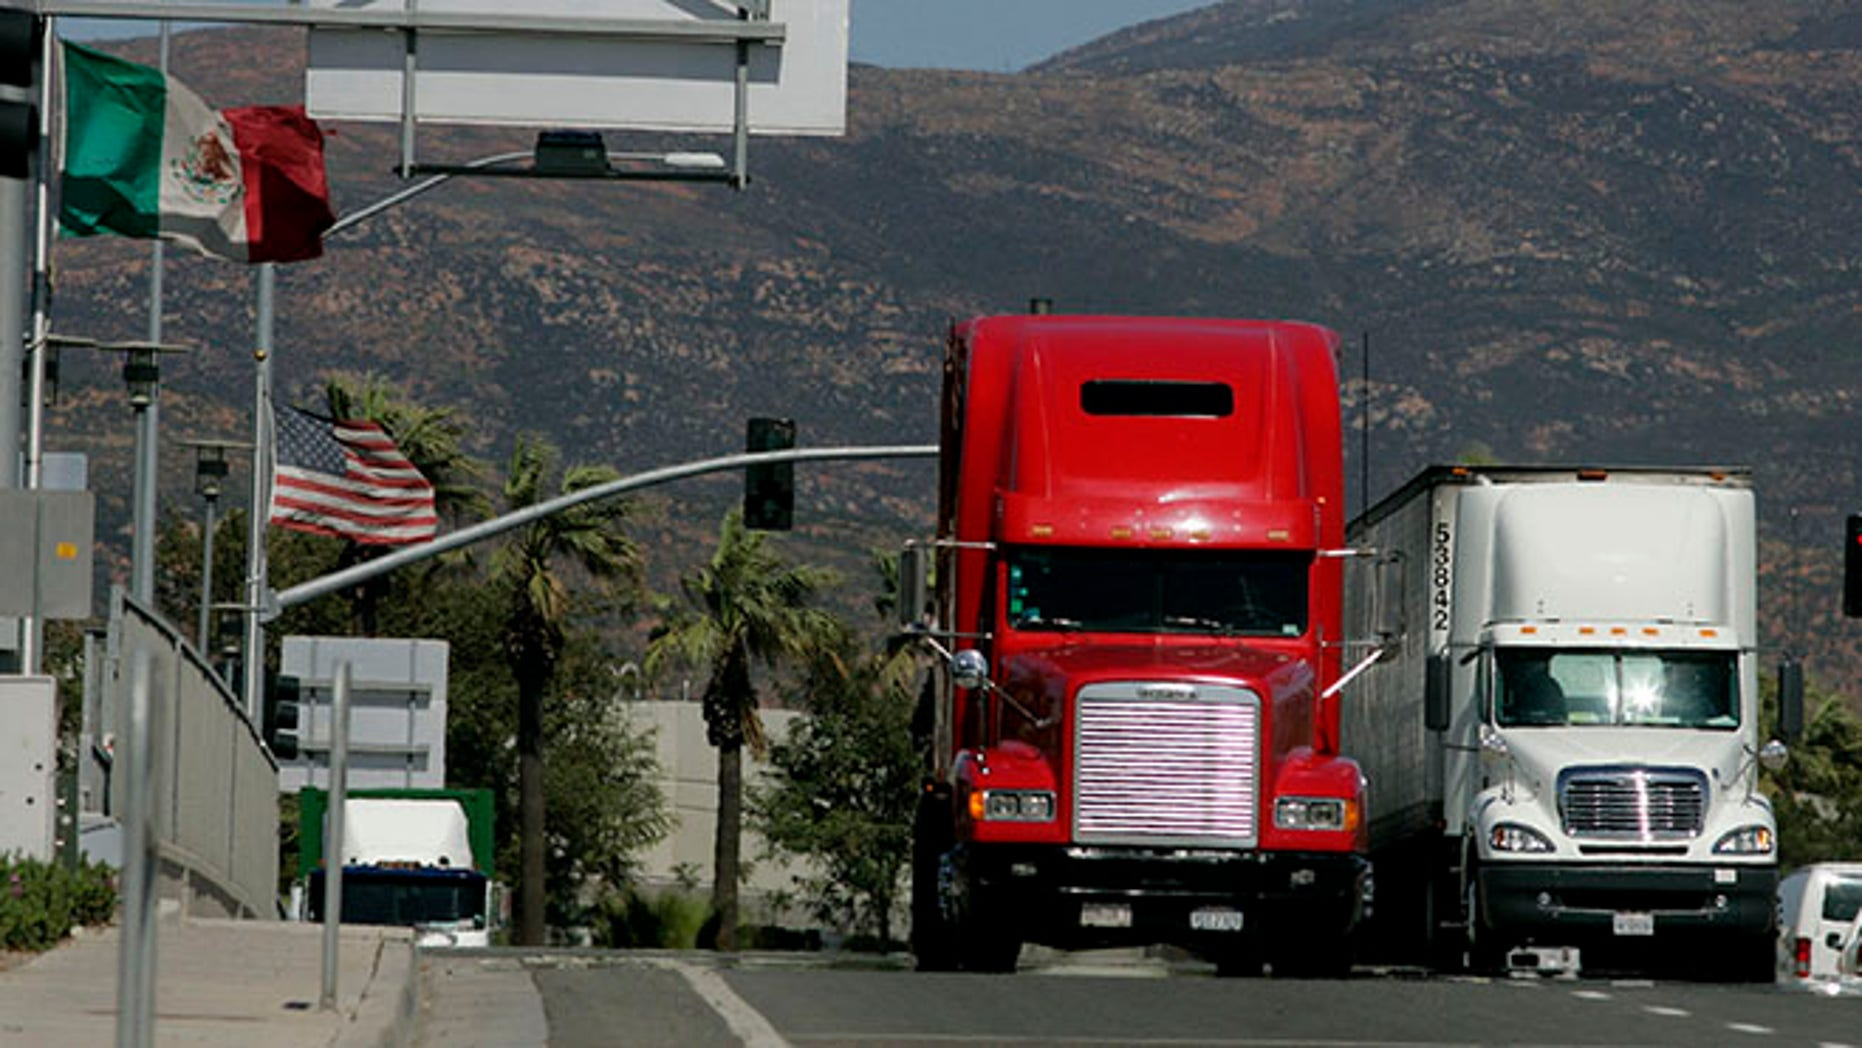 OTAY MESA, CA-MARCH 24:  Trucks coming from Mexico prepare to enter the highway after crossing the border March 24, 2009 in Otay Mesa, California.  Mexico last week slapped higher tariffs on an estimated $2.4 billion worth of goods entering the country from the U.S. in response to a move by Congress  to end a pilot program allowing Mexican trucks to operate in the U.S.  (Photo by Sandy Huffaker/Getty Images)